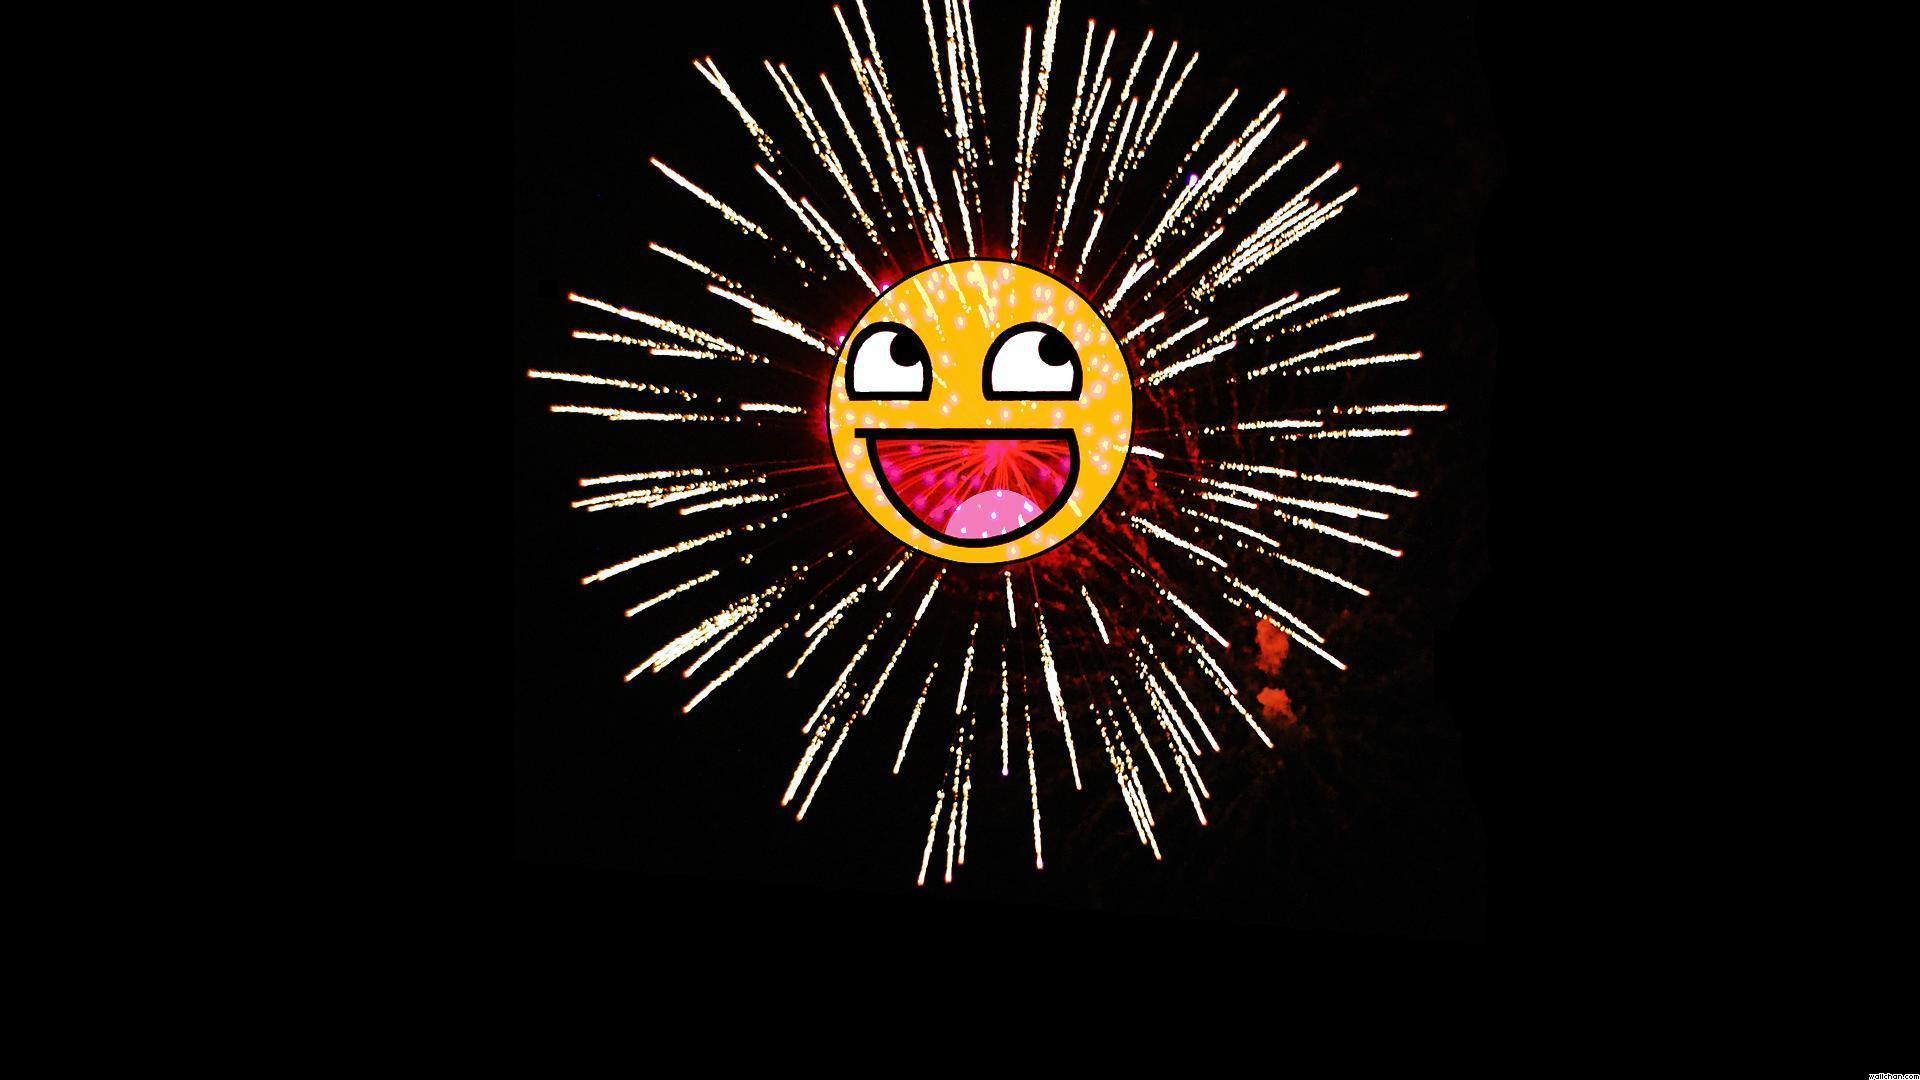 Awesome Face Fireworks Fire Cracker,Fireworks hd Wallpapers For